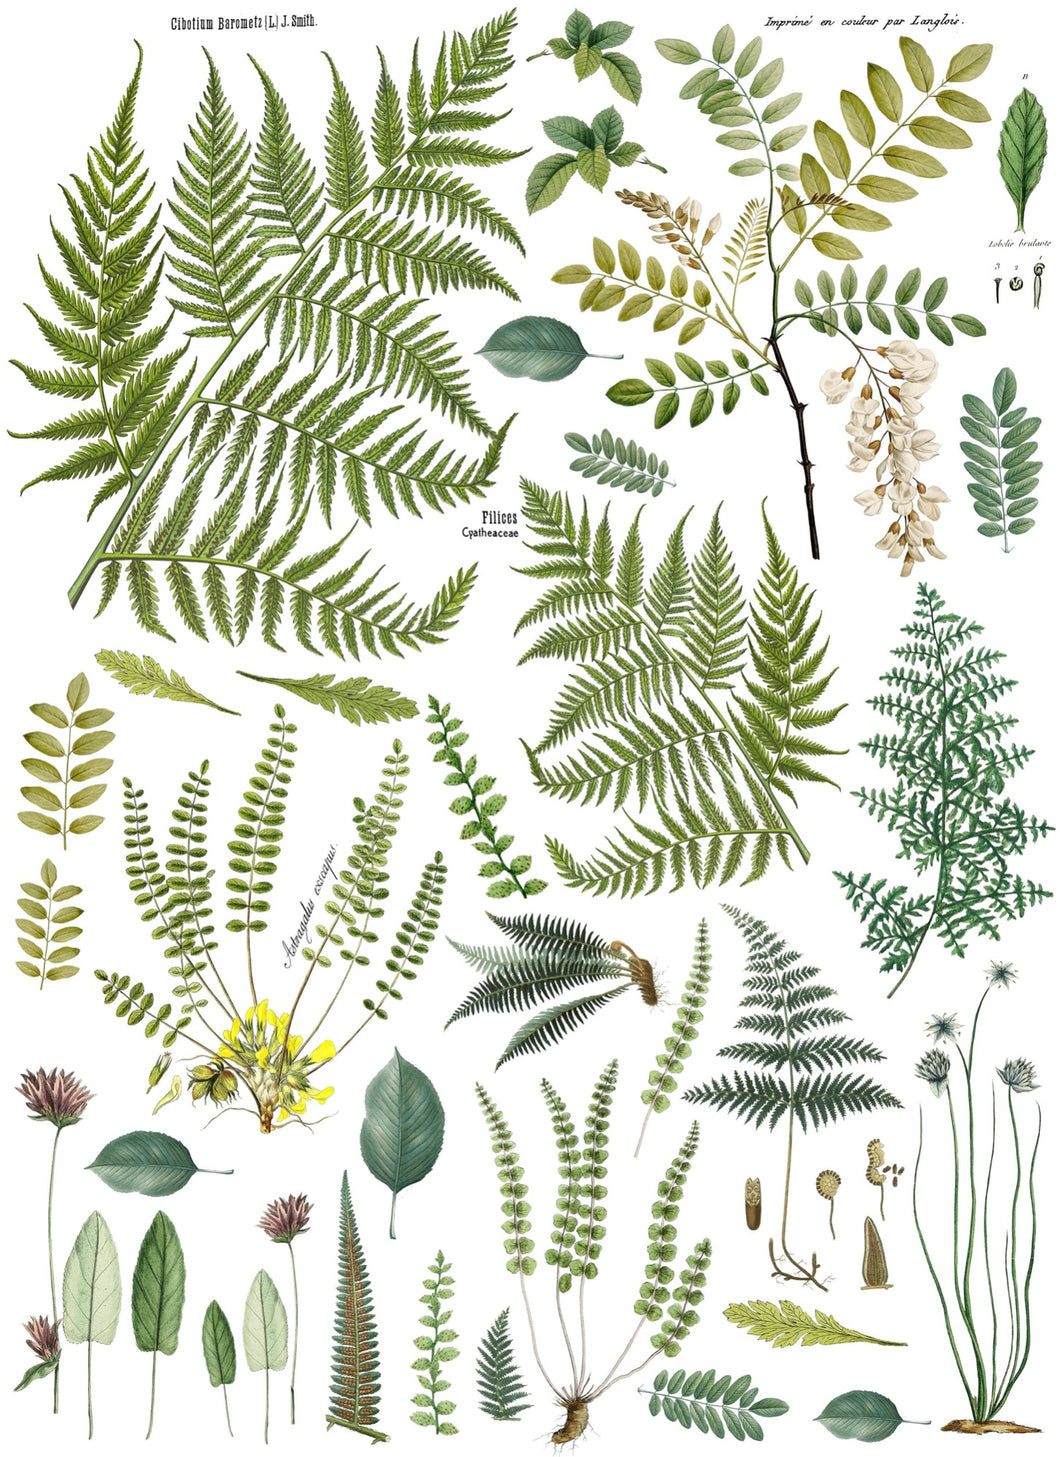 Decor Transfer 24x33 - Frond Botanical